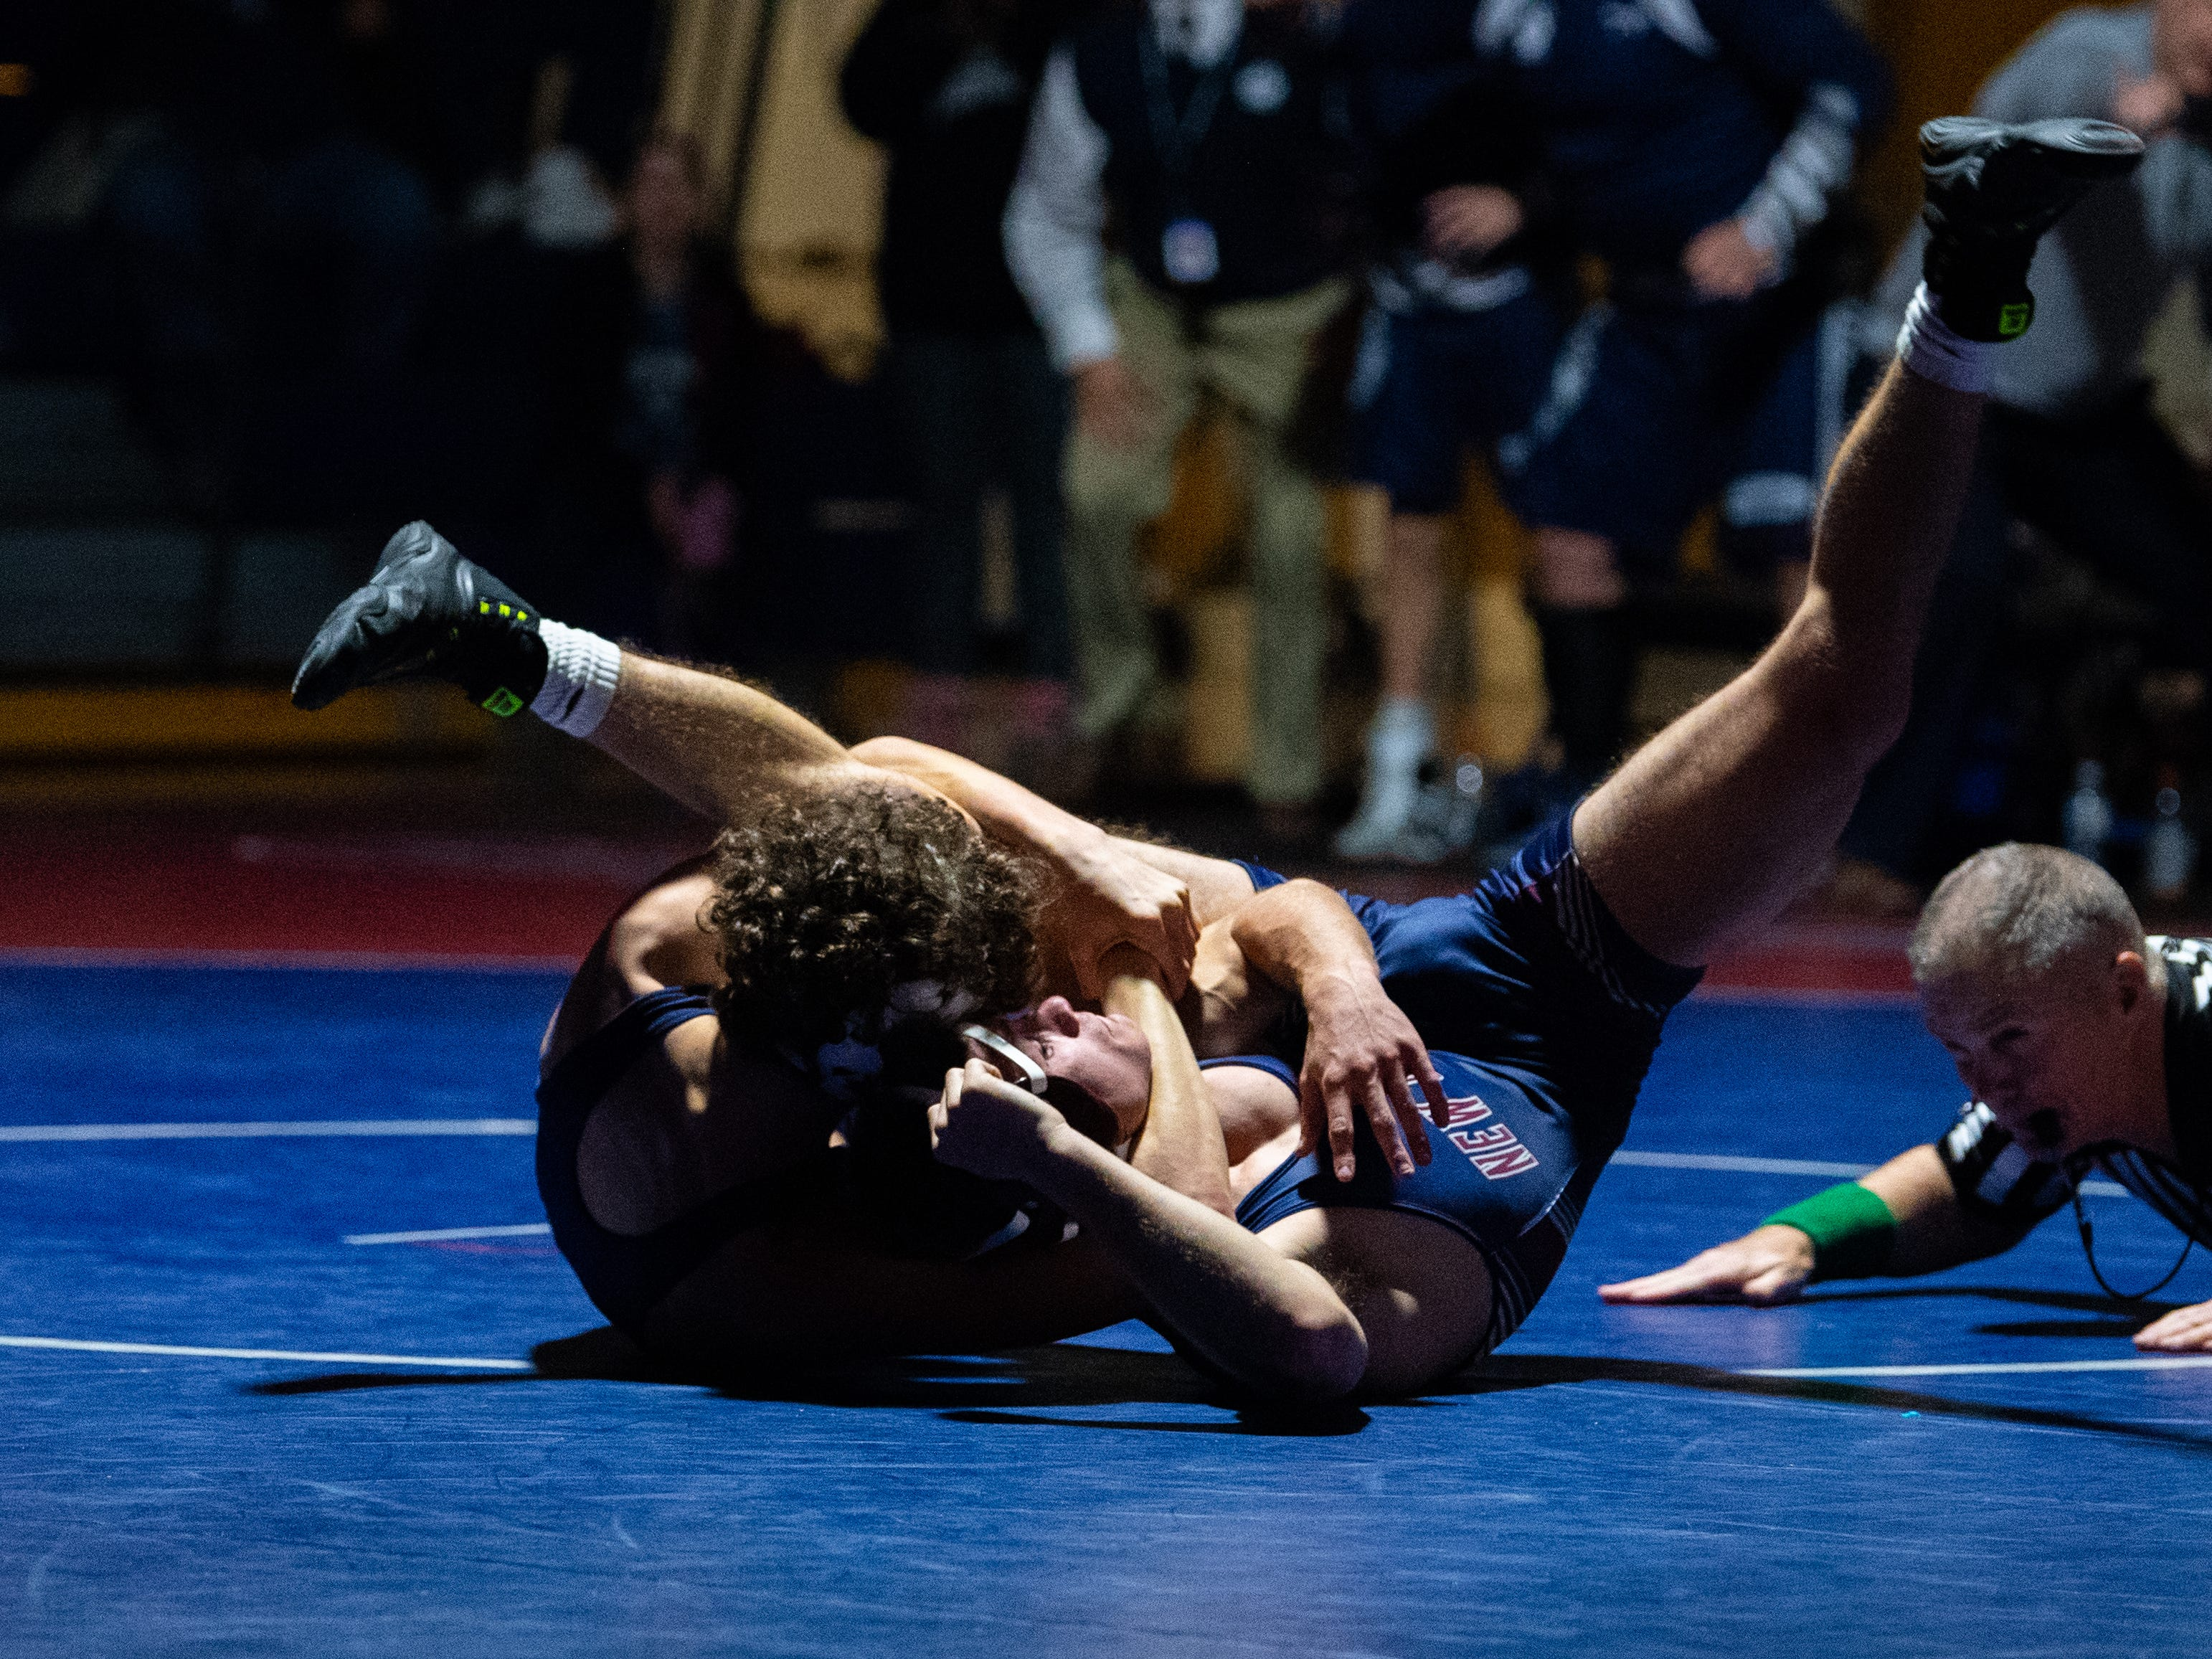 Cael Turnbull of Dallastown fully controls Kurt Smith of New Oxford during the YAIAA Division I wrestling match, December 13, 2018. The Wildcats defeated the Colonials 40-20.